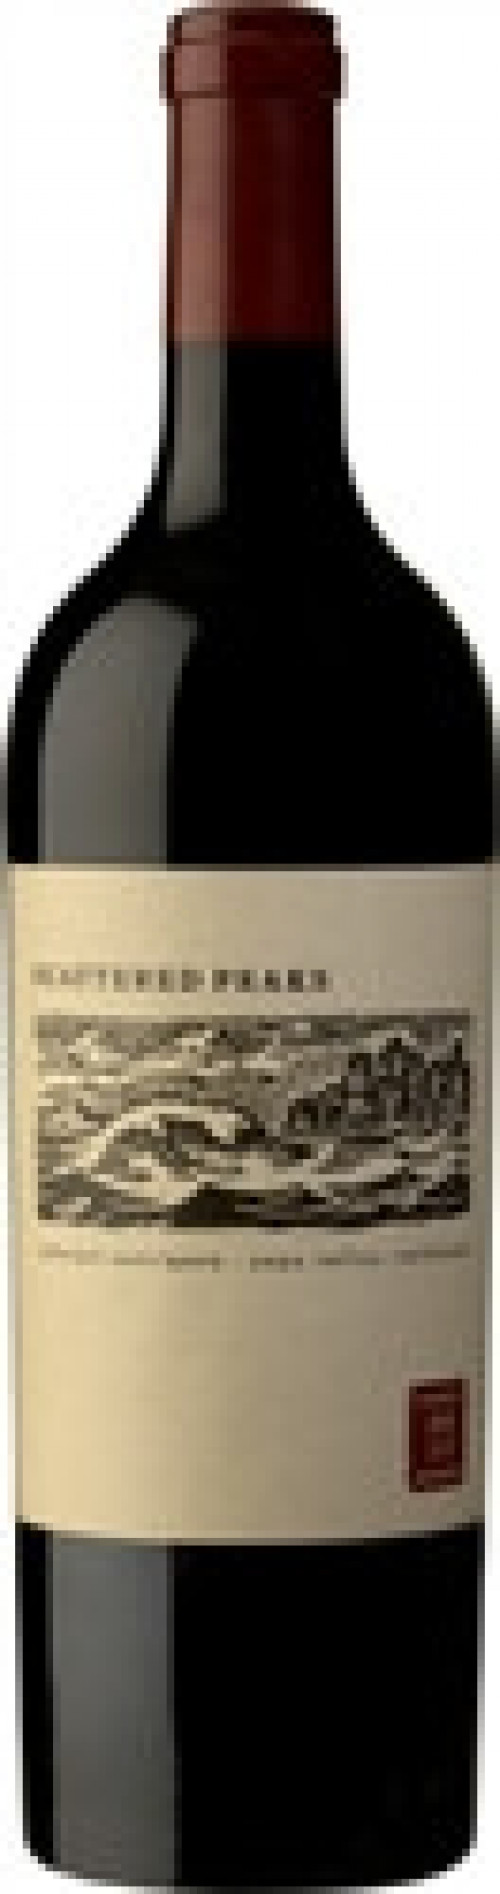 Scattered Peaks Cabernet Sauvignon 750ml